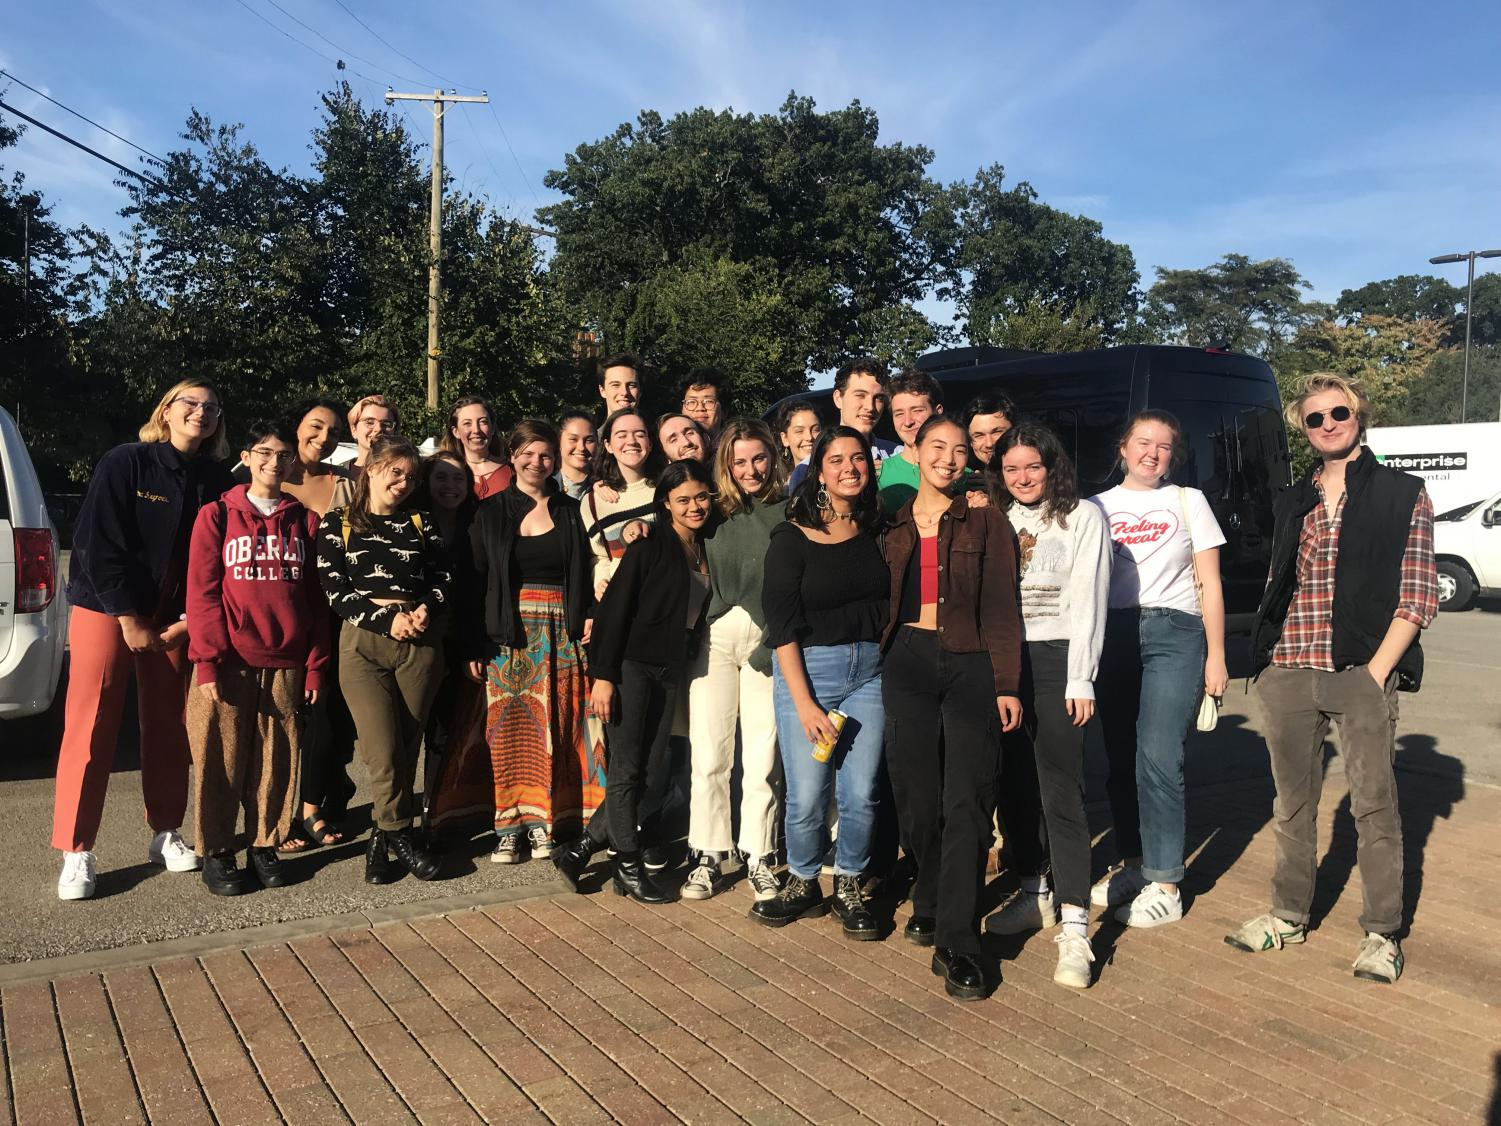 College second-years and ExCo instructors Marisa Kim and Serena Zets took their students on a field trip last week to see a live taping of The Bachelor. Kim and Zets teach BachCo, an ExCo analyzing The Bachelor and The Bachelorette franchise through political and sociological lenses.